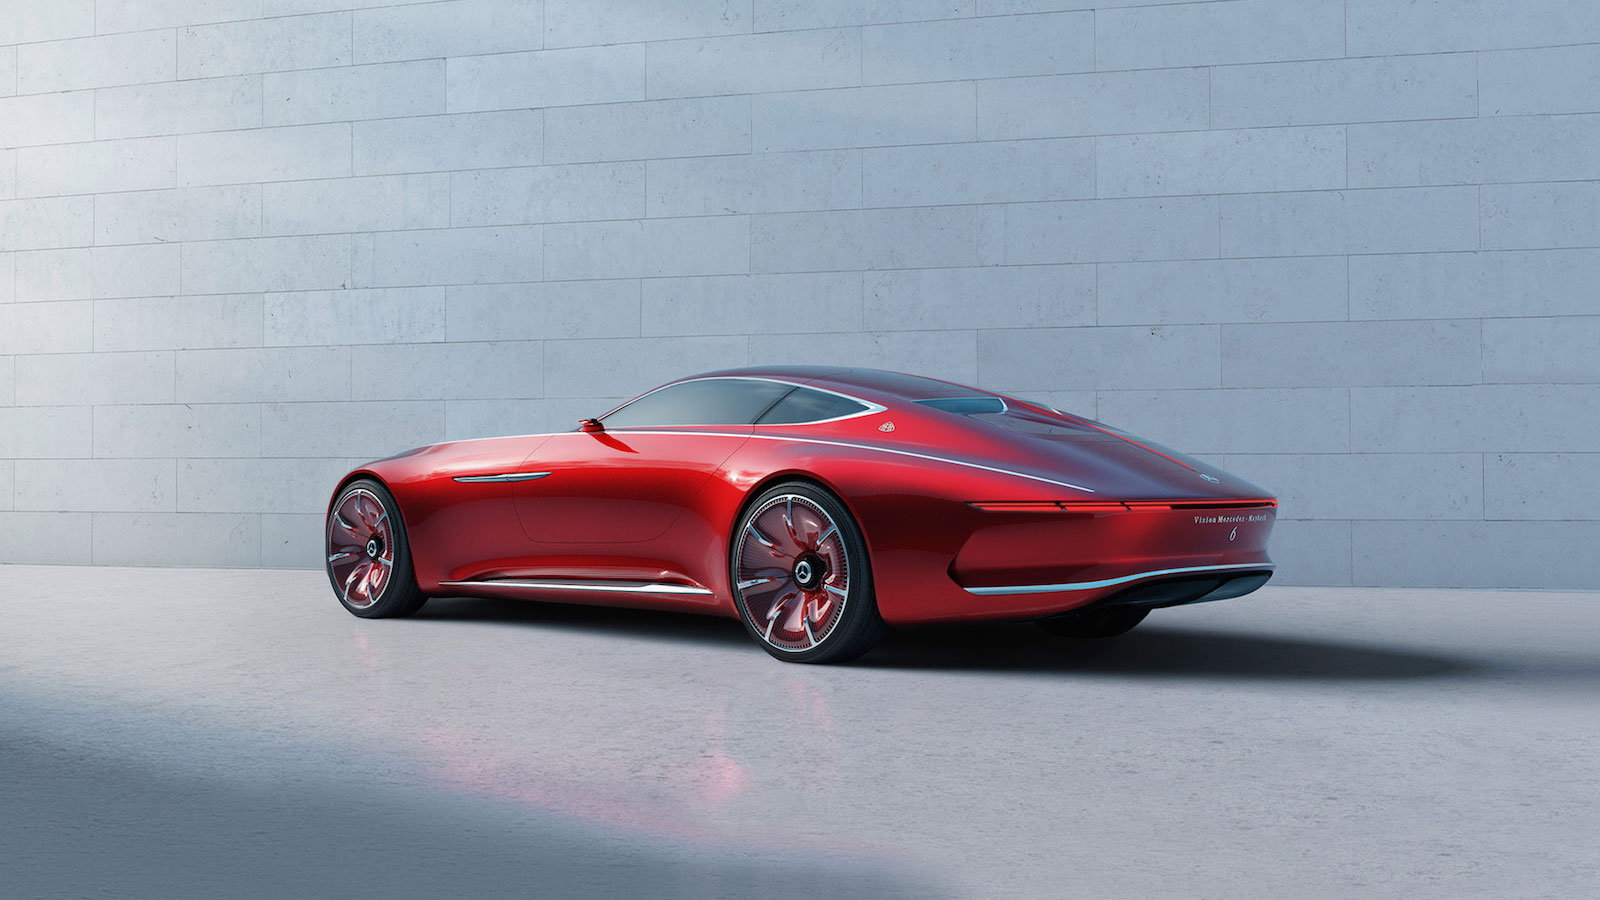 The Vision Mercedes Maybach 6 is Opulence Personified